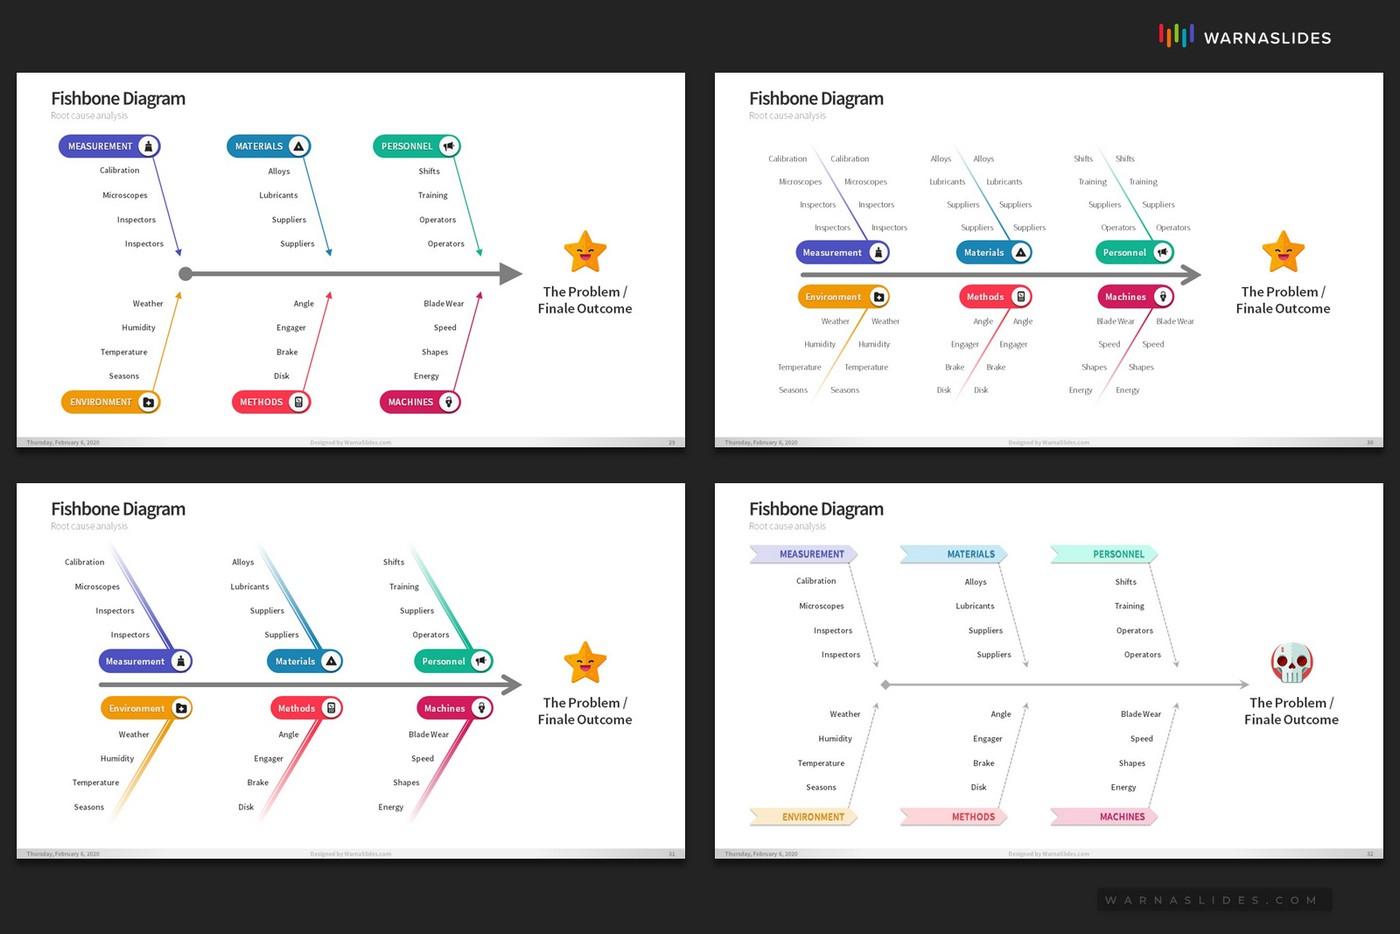 Fishbone-Ishikawa-Root-Cause-Analysis-Diagram-PowerPoint-Template-for-Business-Pitch-Deck-Professional-Creative-PowerPoint-Icons-009